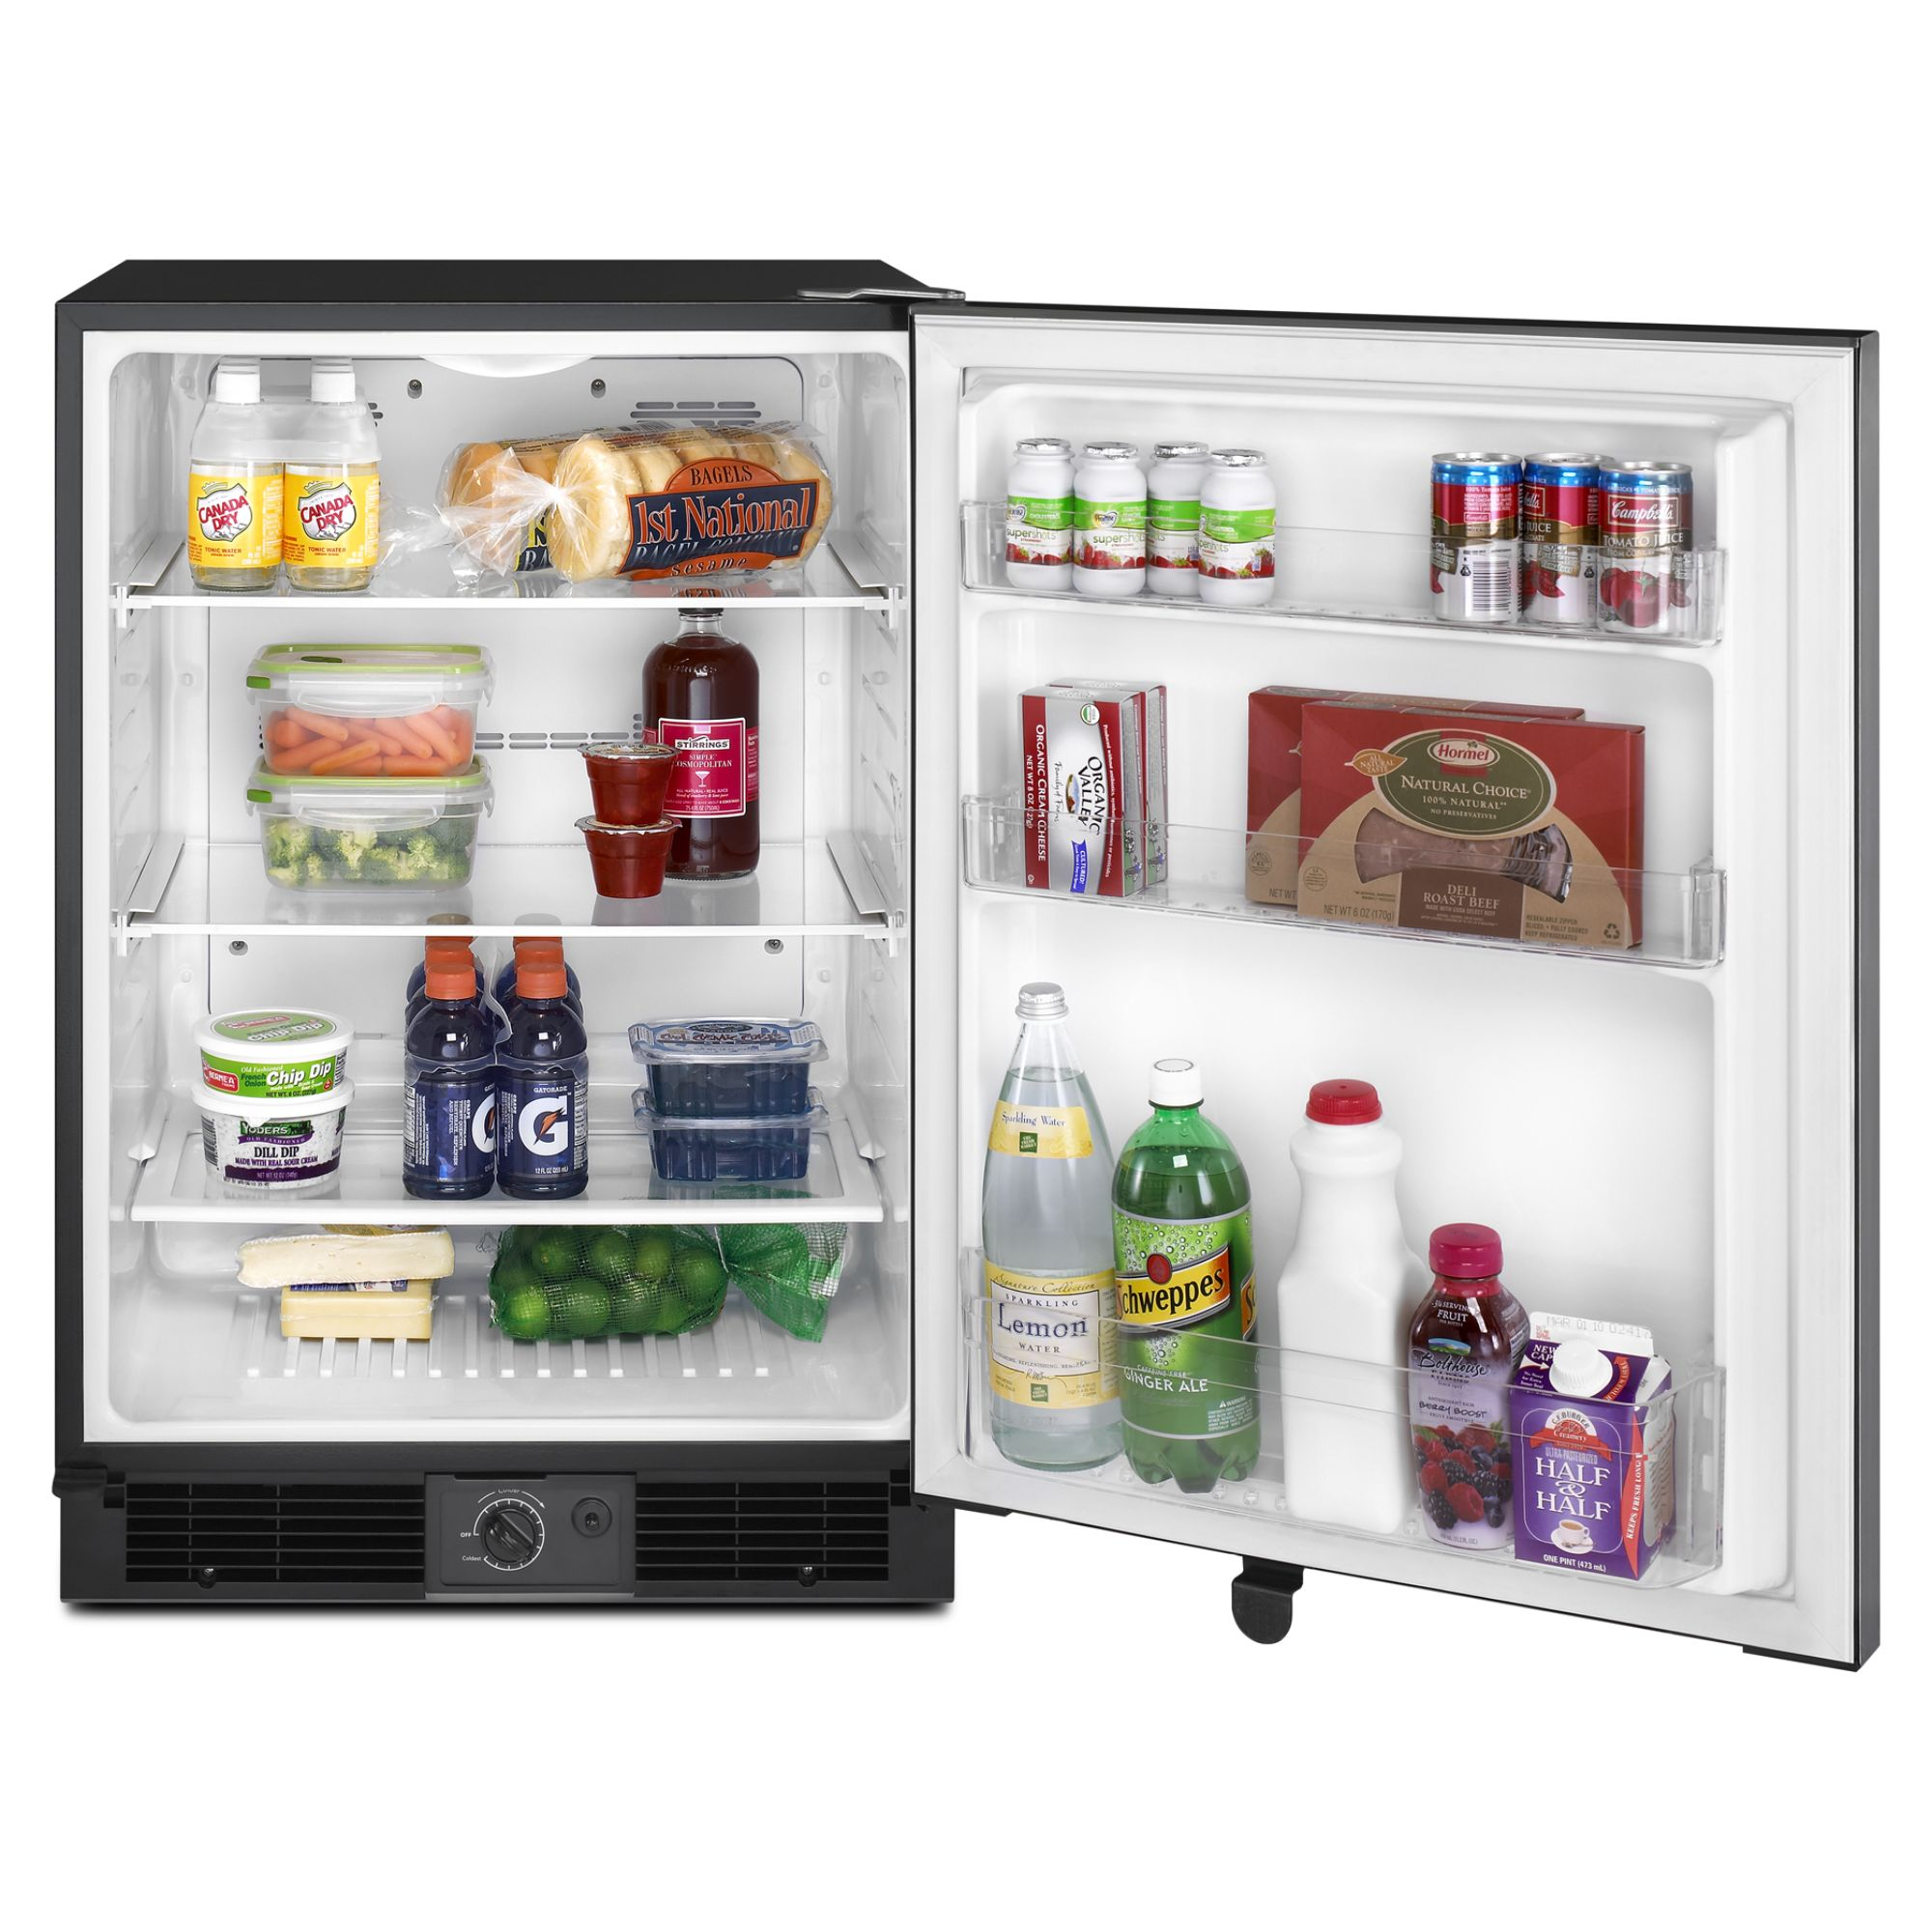 Maytag 5.6 cu. ft. Undercounter Refrigerator with Removable Shelves - Stainless Steel